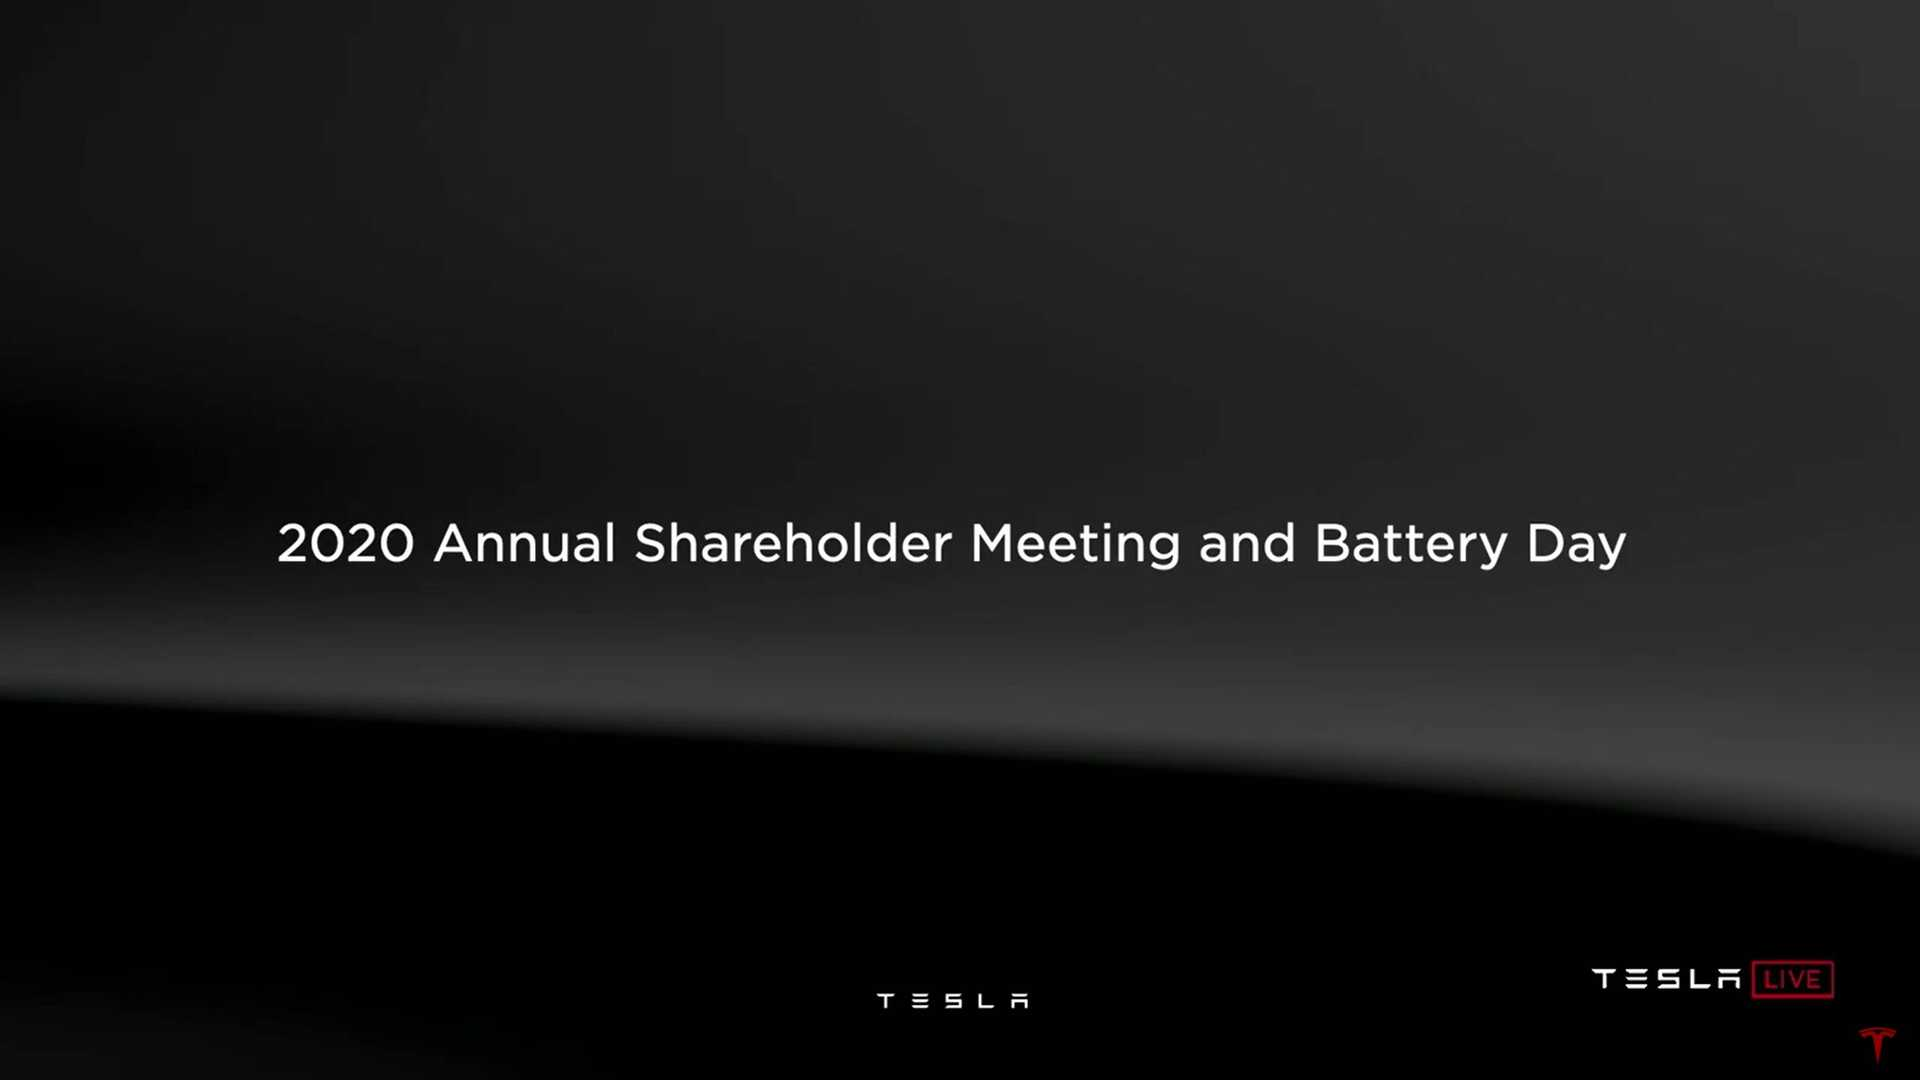 2020-Tesla-Shareholder-Meeting-and-Battery-day-1